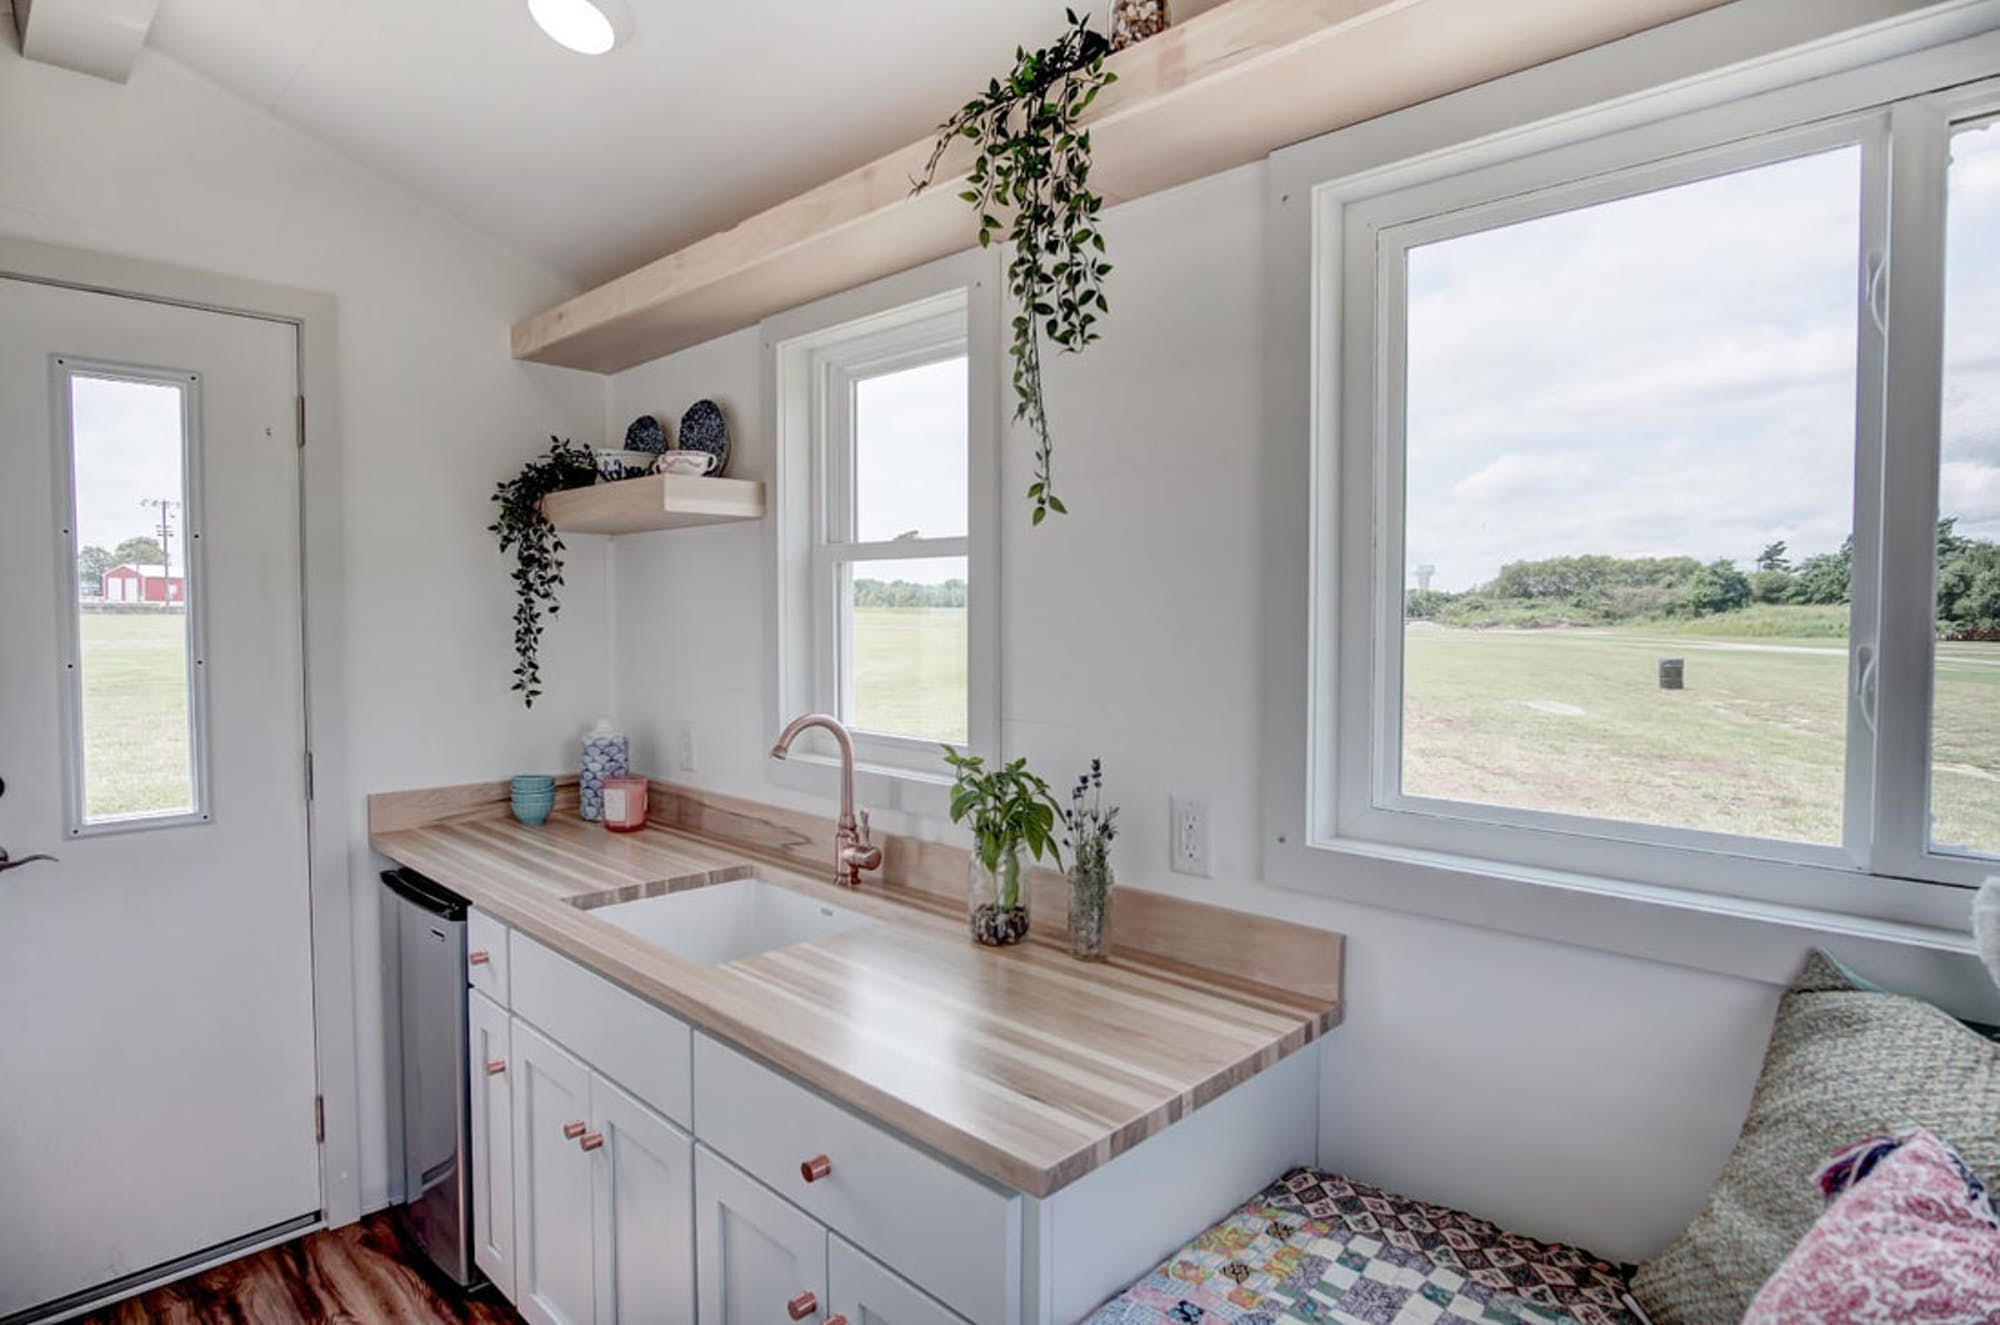 Tiny House Packs All The Essentials In 100 Square Feet